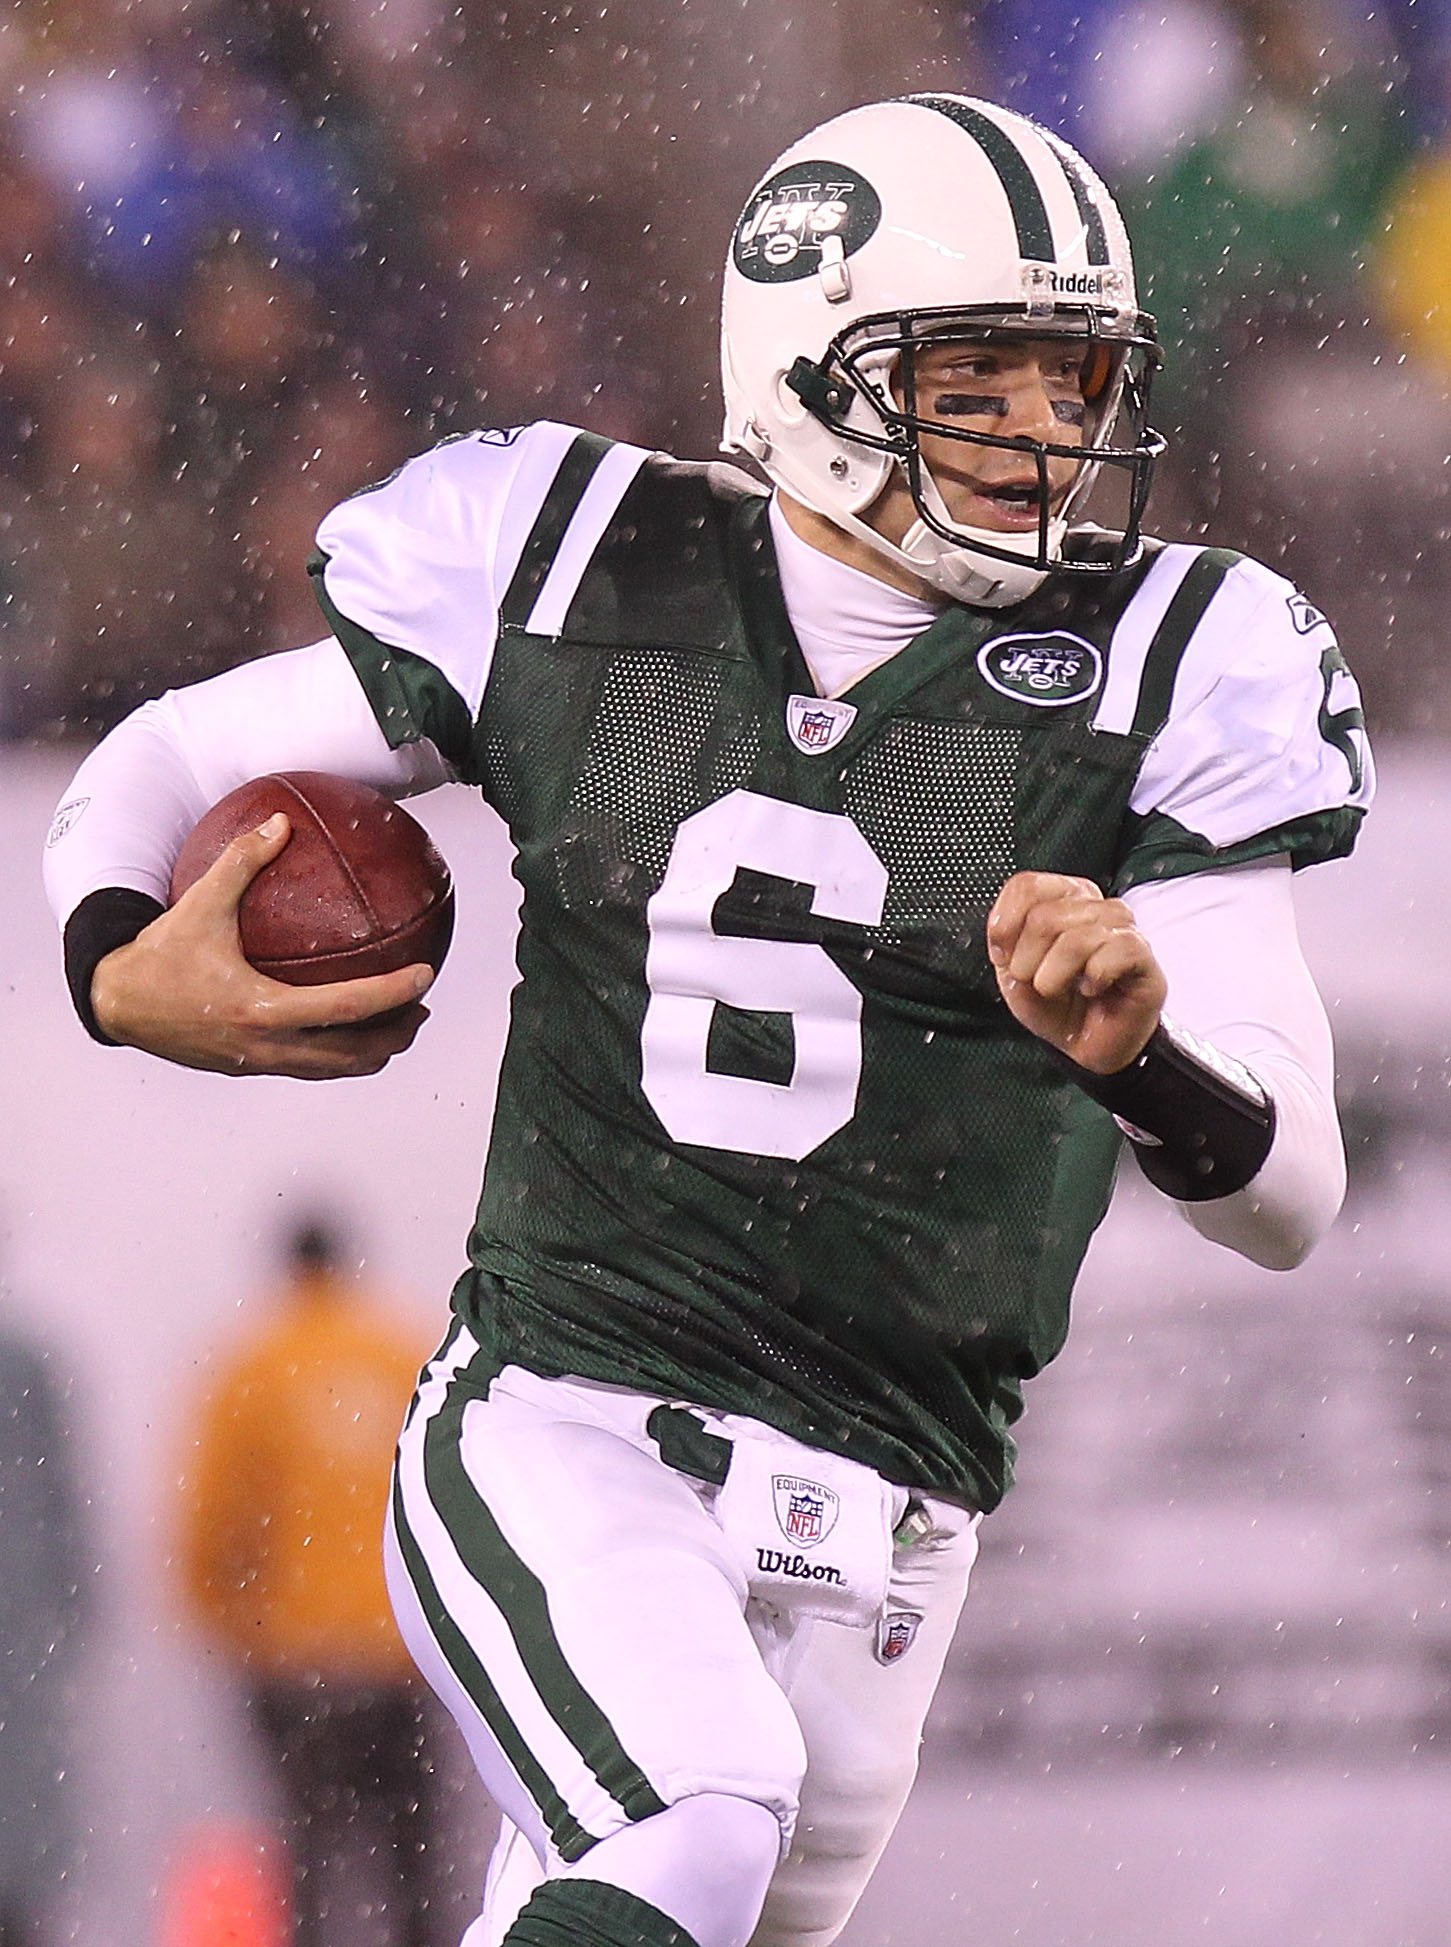 EAST RUTHERFORD, NJ - DECEMBER 12:  Mark Sanchez #6 of the New York Jets against the Miami Dolphins at New Meadowlands Stadium on December 12, 2010 in East Rutherford, New Jersey.  (Photo by Nick Laham/Getty Images)